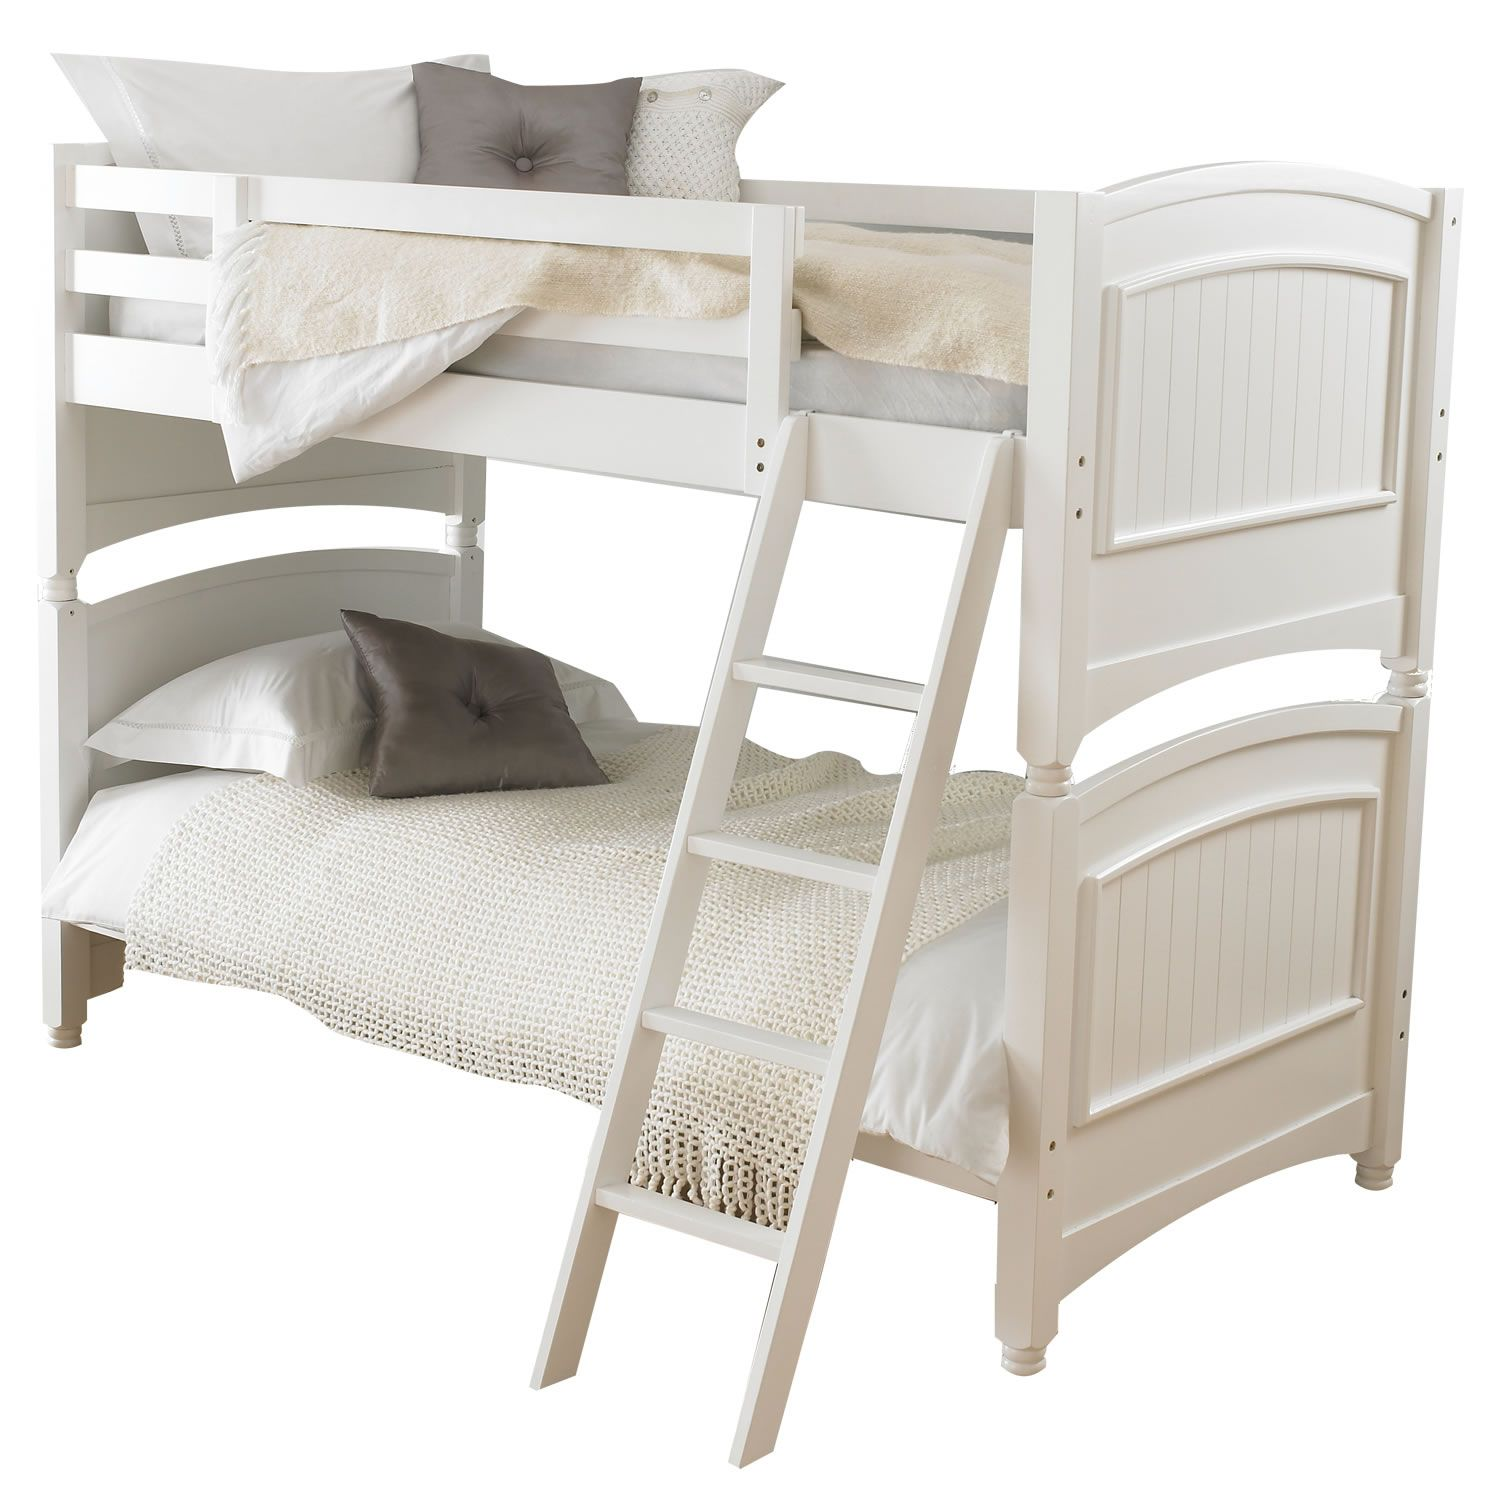 Lovely Colonial White Bunk Bed Frame A